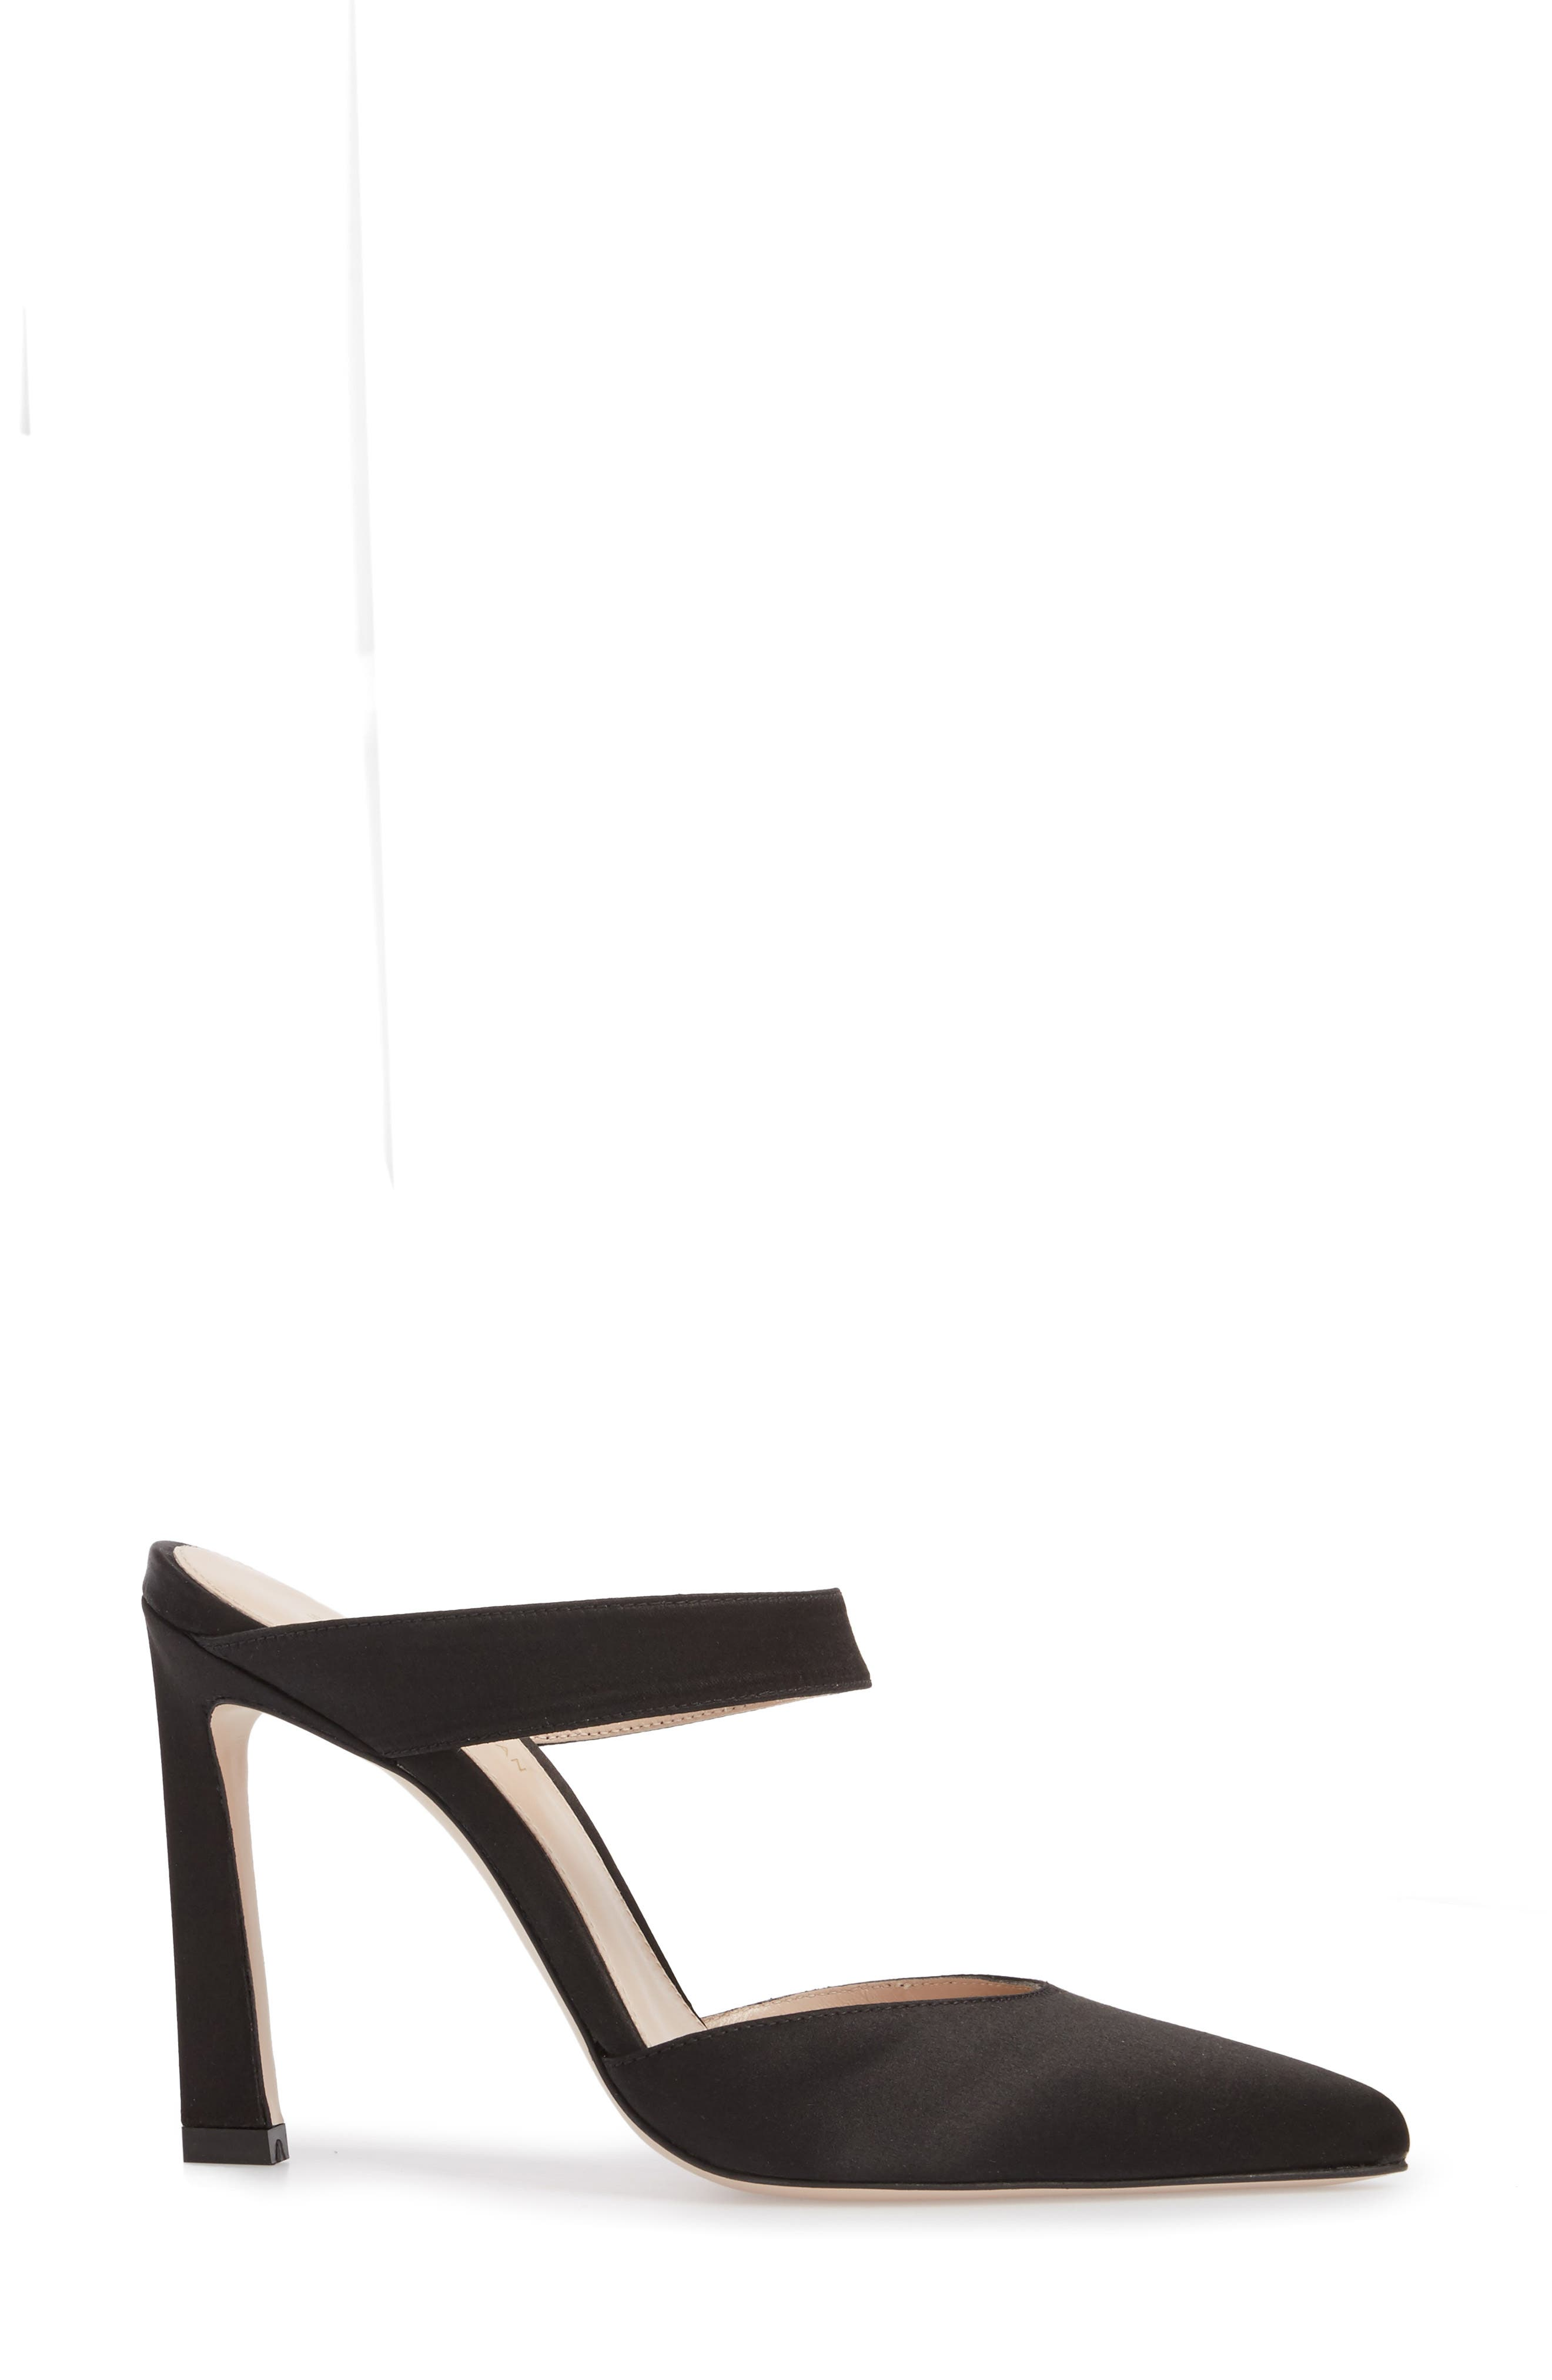 Event Pointy Toe Pump,                             Alternate thumbnail 3, color,                             002